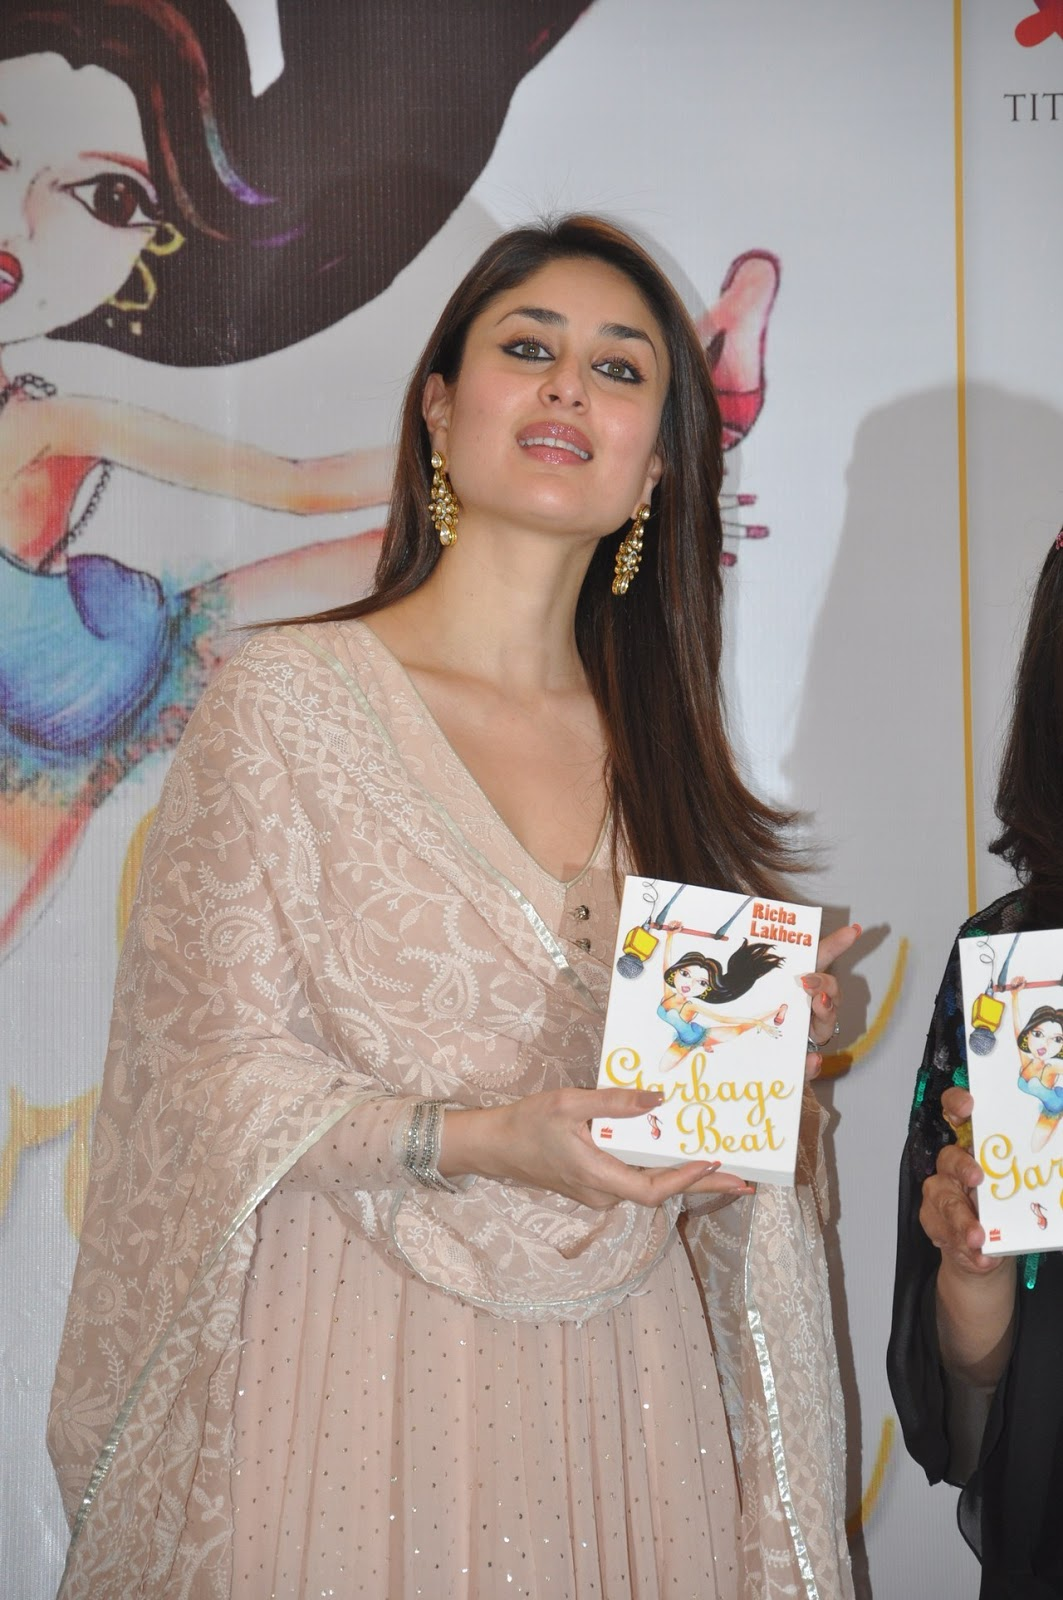 Kareena Kapoor Looks Drop Dead Gorgeous At The 'Garbage Beat' Book Launch In Mumbai